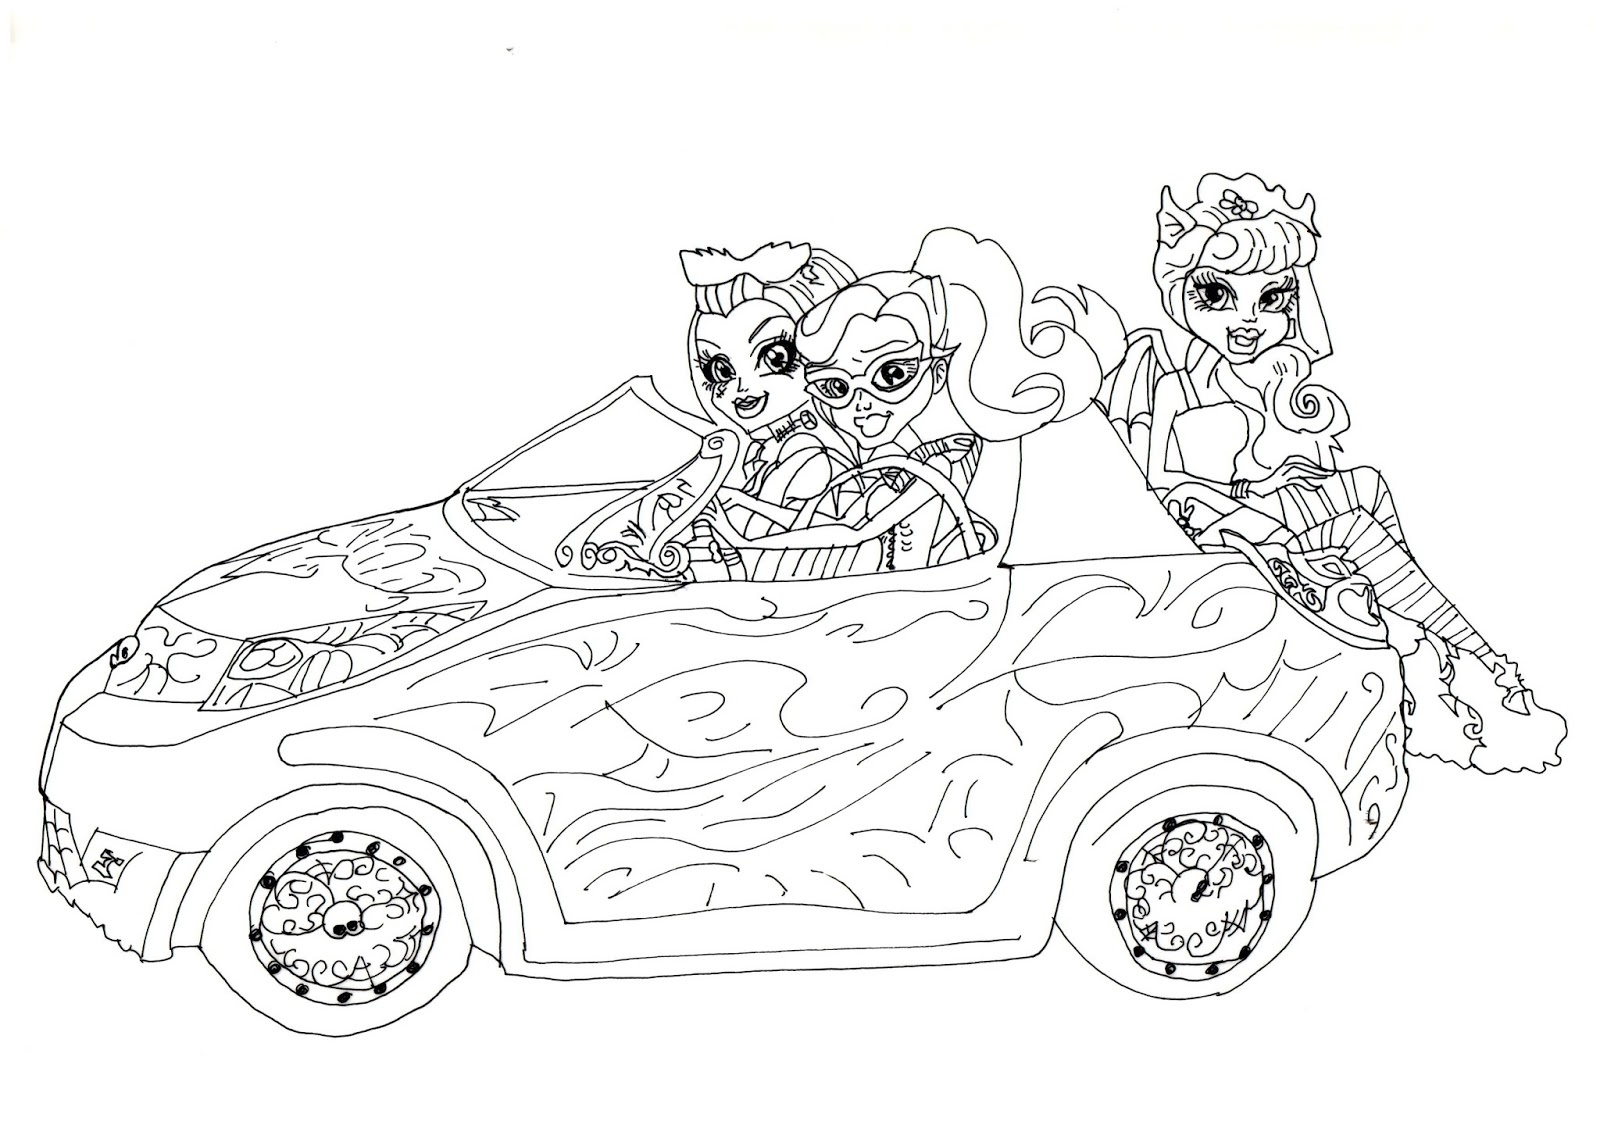 Free Printable Monster High Coloring Pages: August 2013